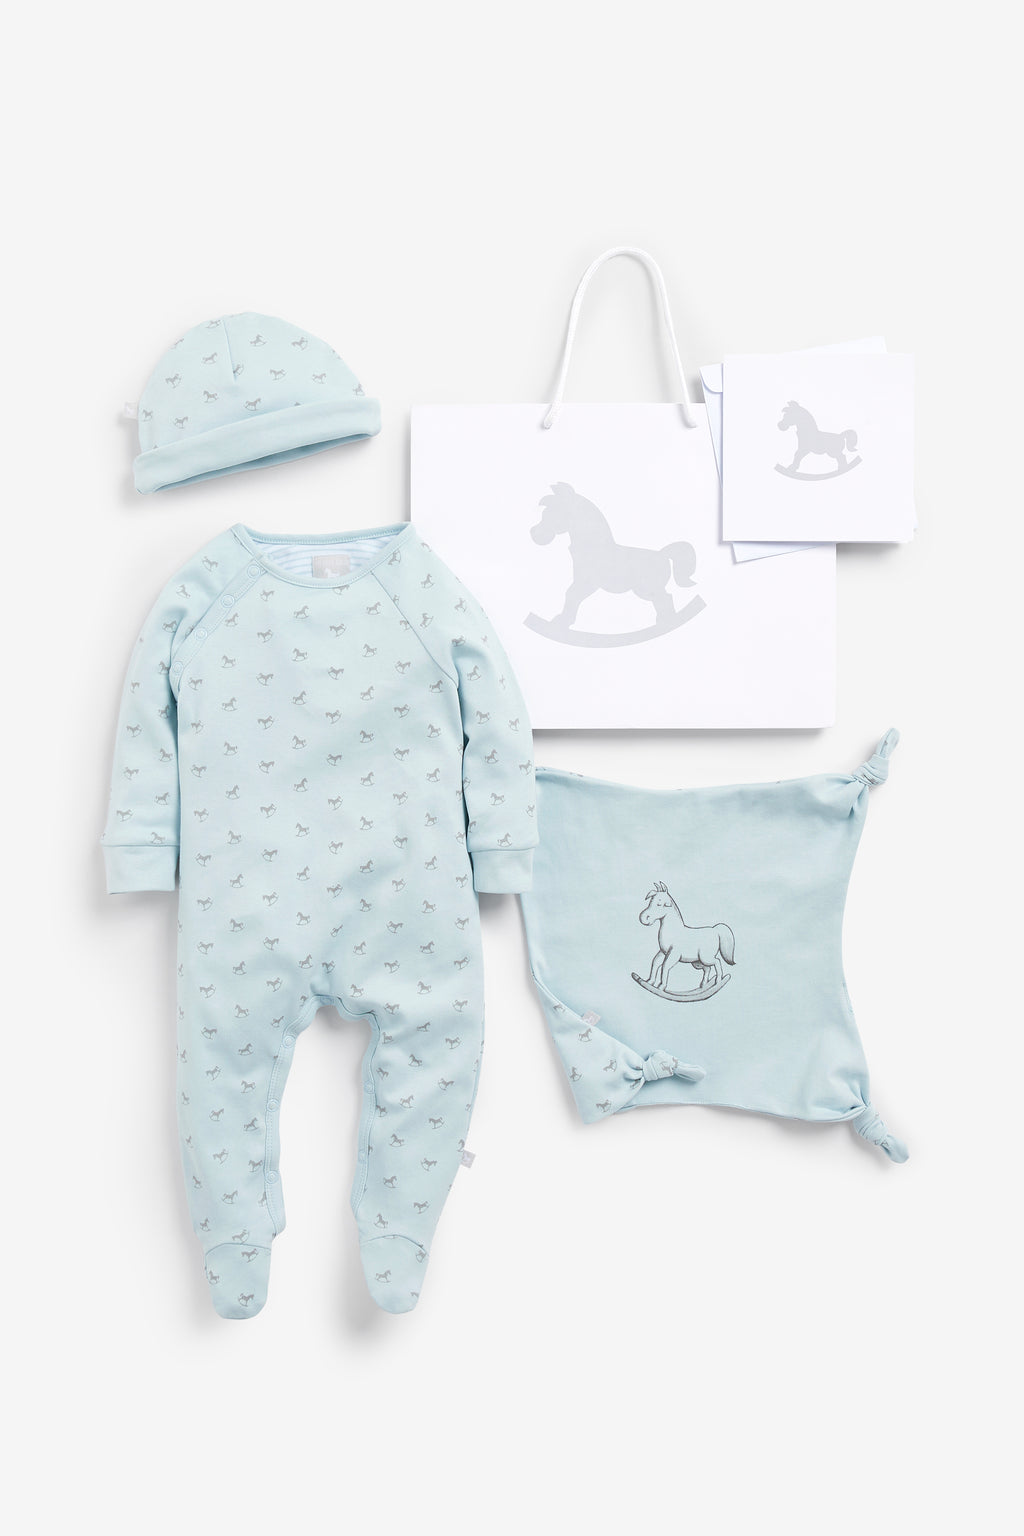 Super Soft Jersey Sleep Suit, Hat And Comforter Gift Set- blue